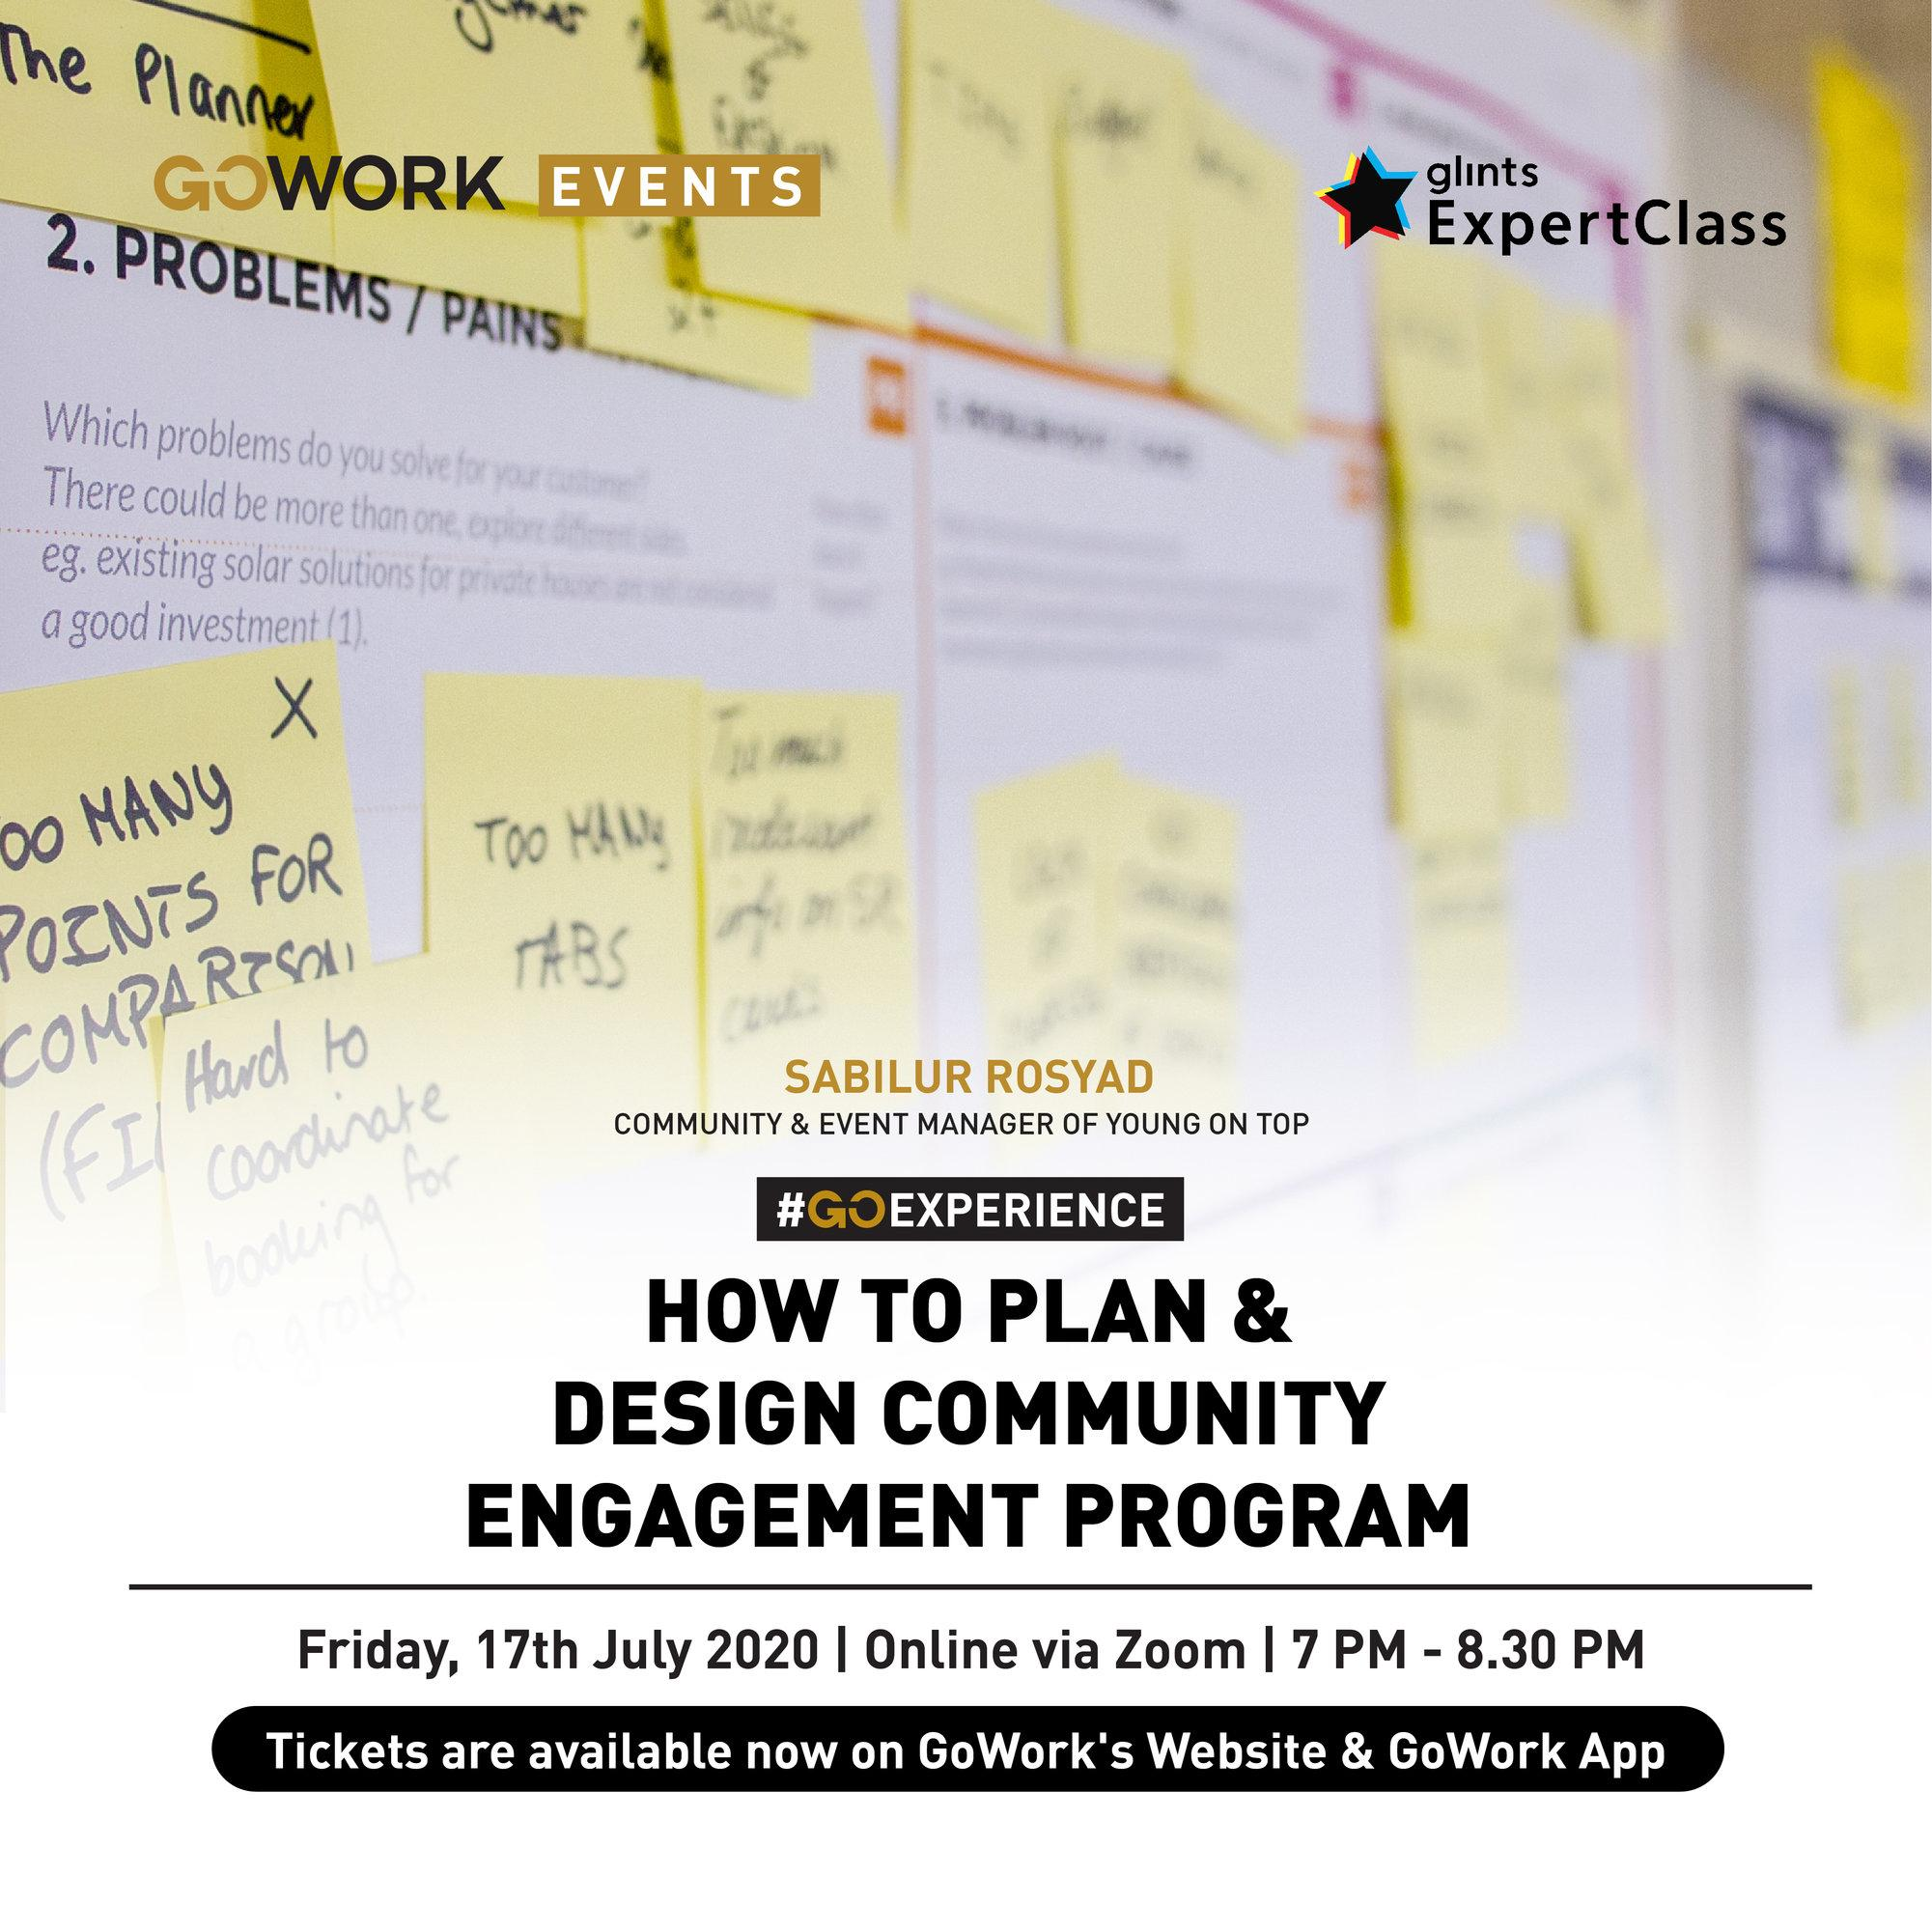 How To Plan & Design Community Engagement Program